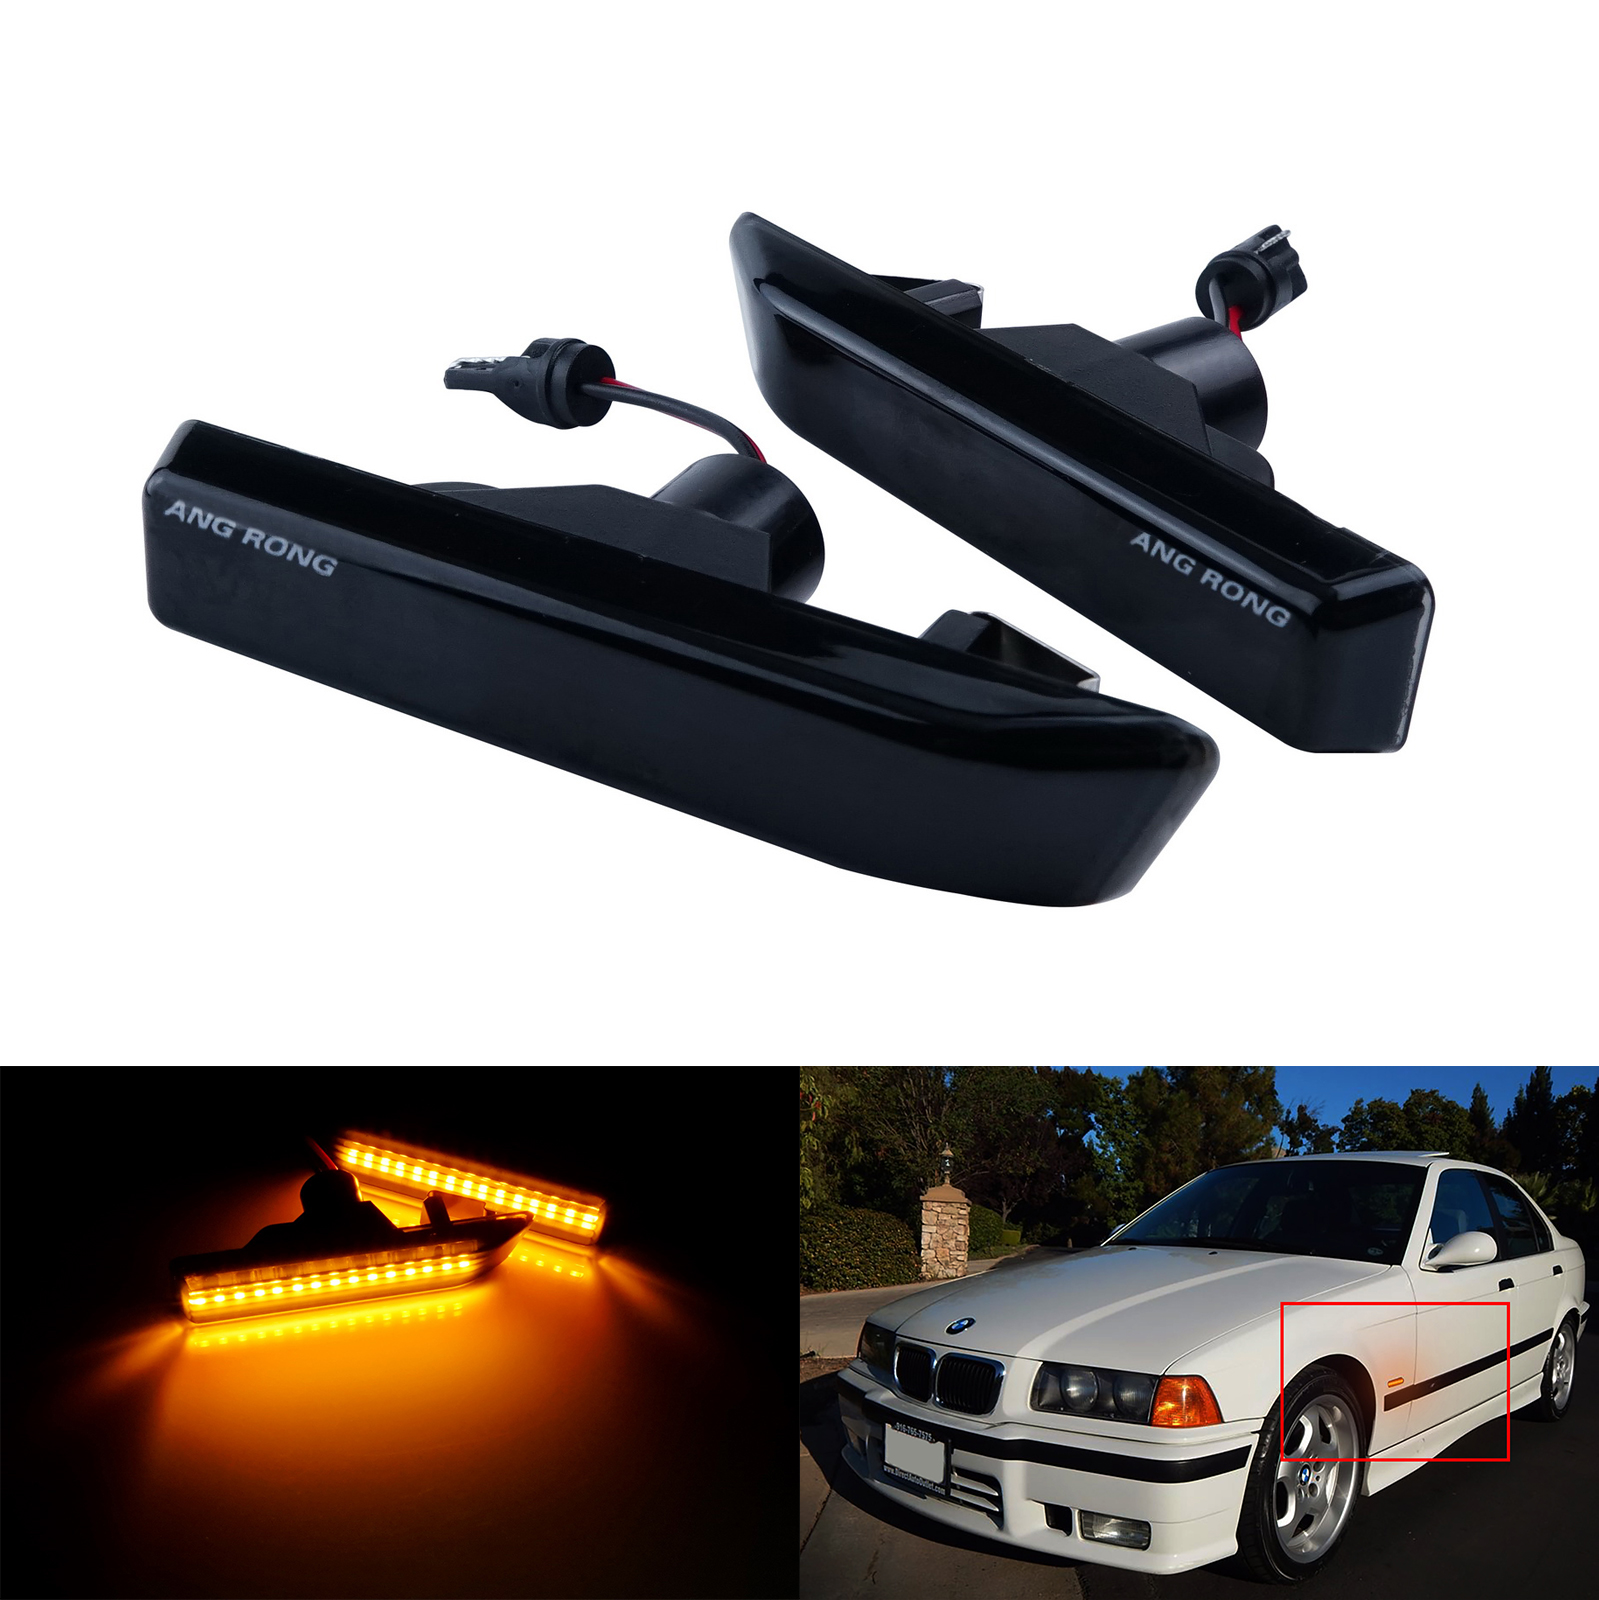 2x Amber <font><b>LED</b></font> Side Marker Indicator Repeater Light For <font><b>BMW</b></font> M3 X5 E53 3 Series <font><b>E36</b></font> image